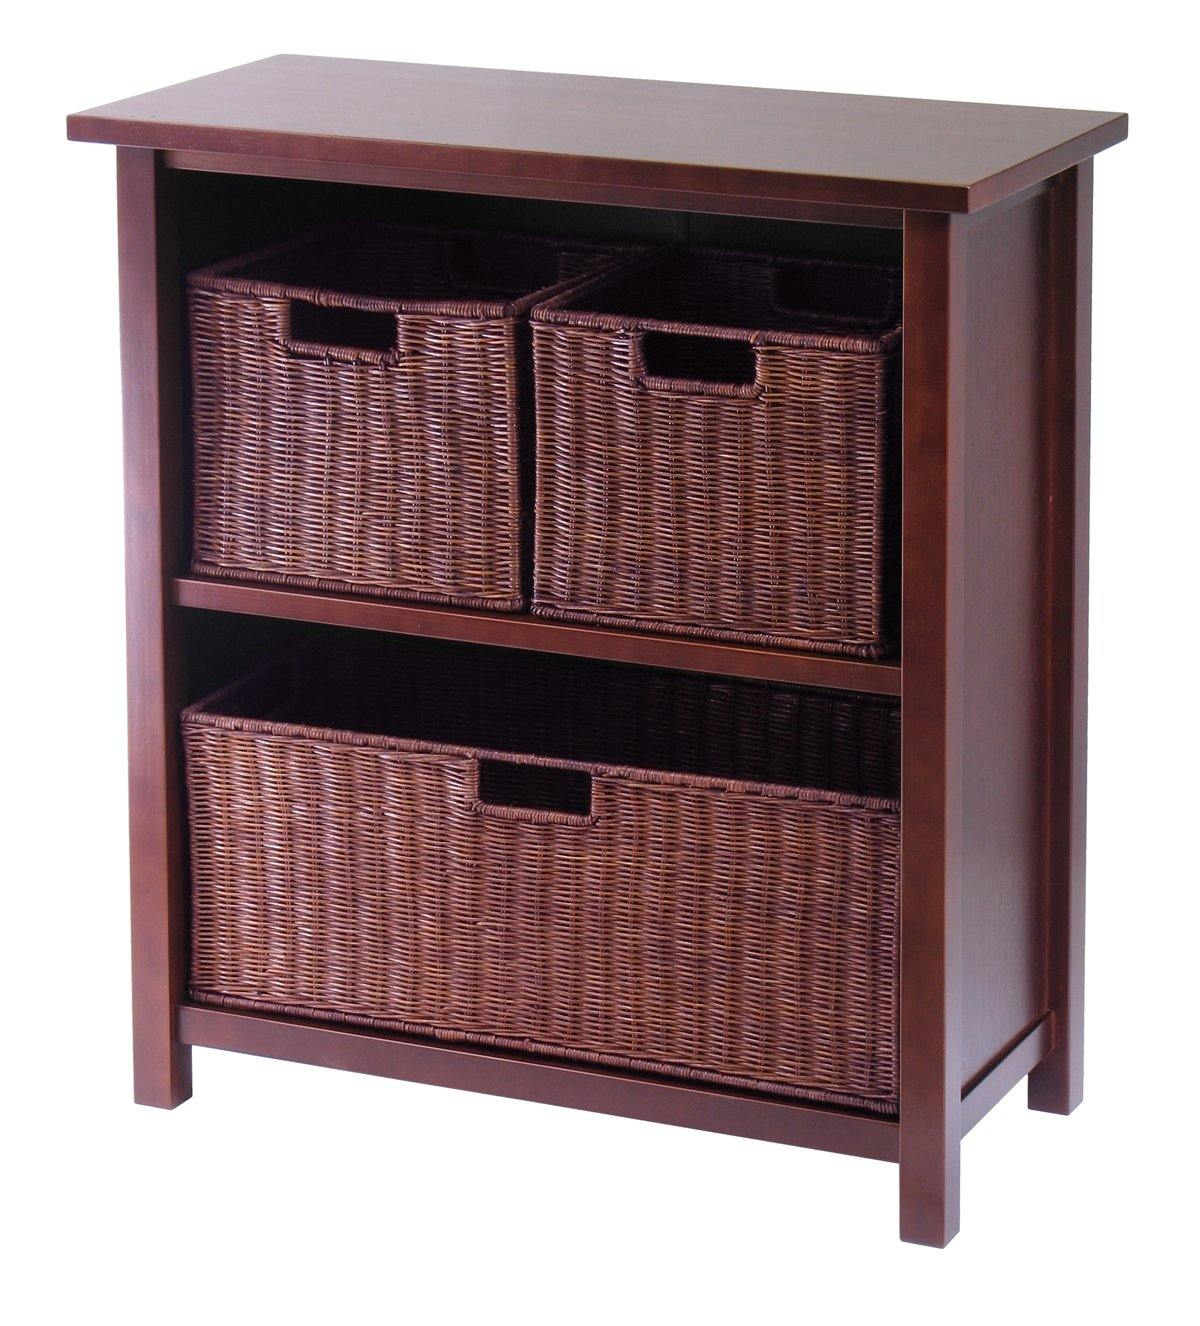 Milan 4Pc Cabinet/Shelf with 3 Baskets - My USA Furniture